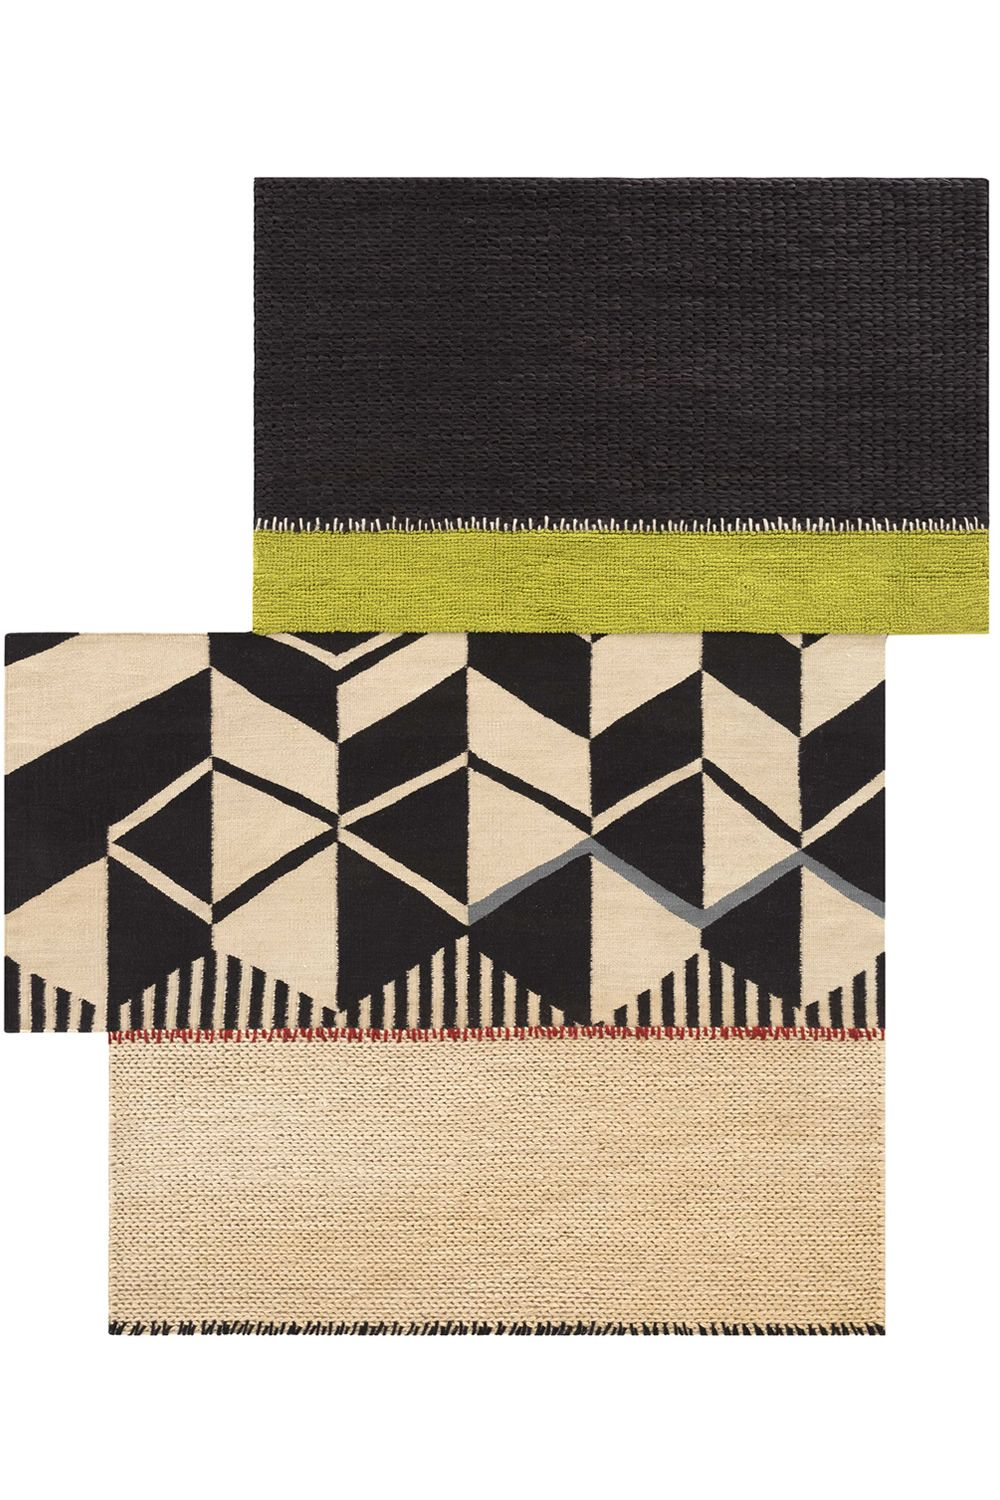 Desig rug in jute and wool, available in different dimensions